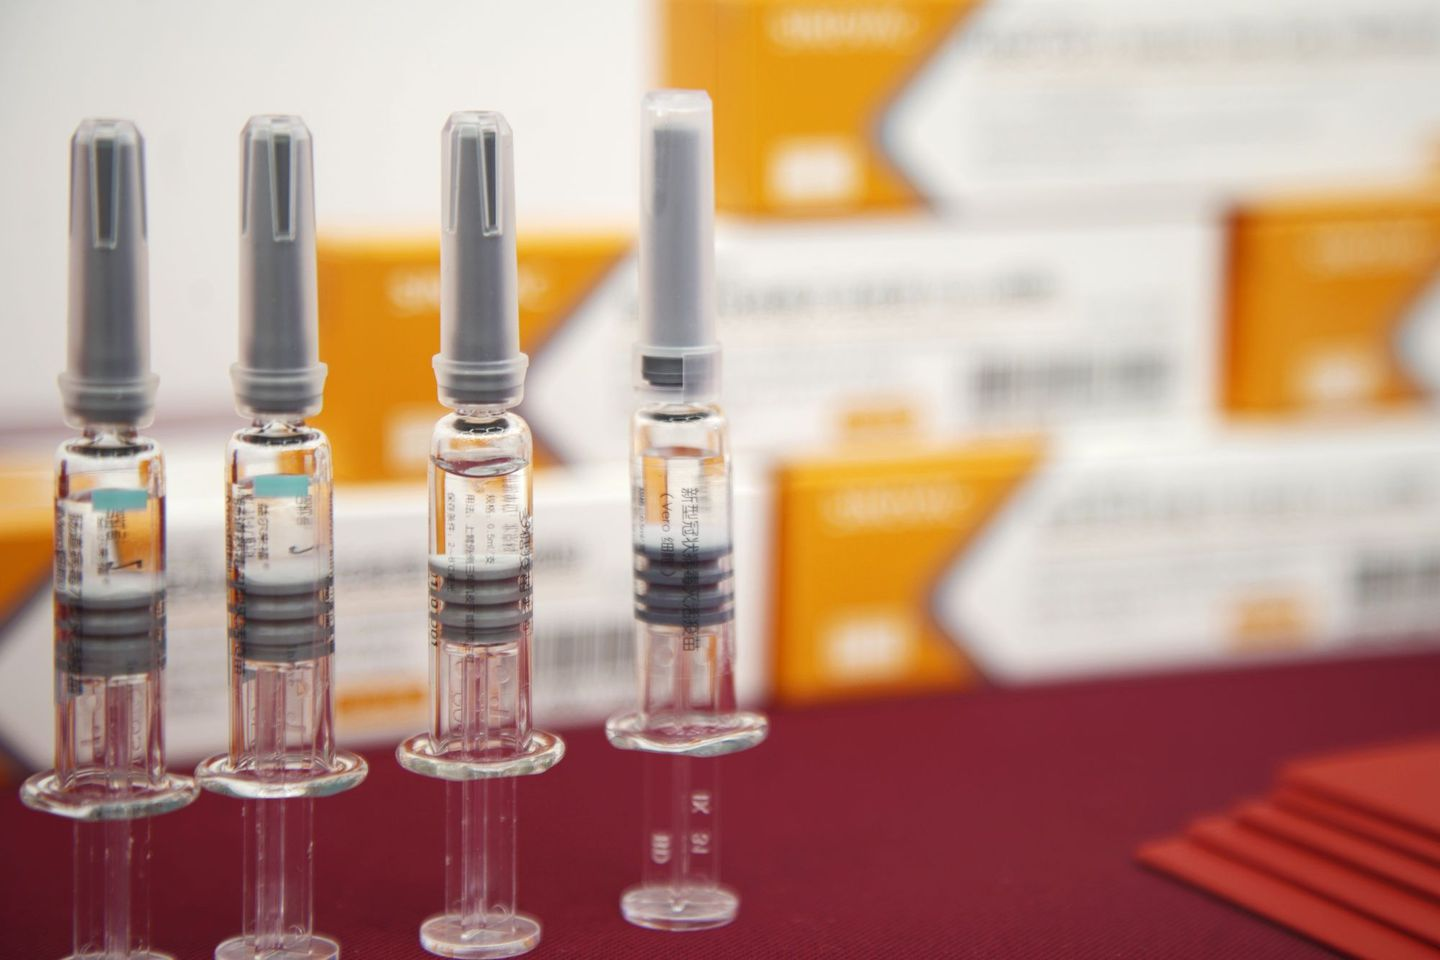 The U.S. gears up to Work Double Time to get People Vaccinated